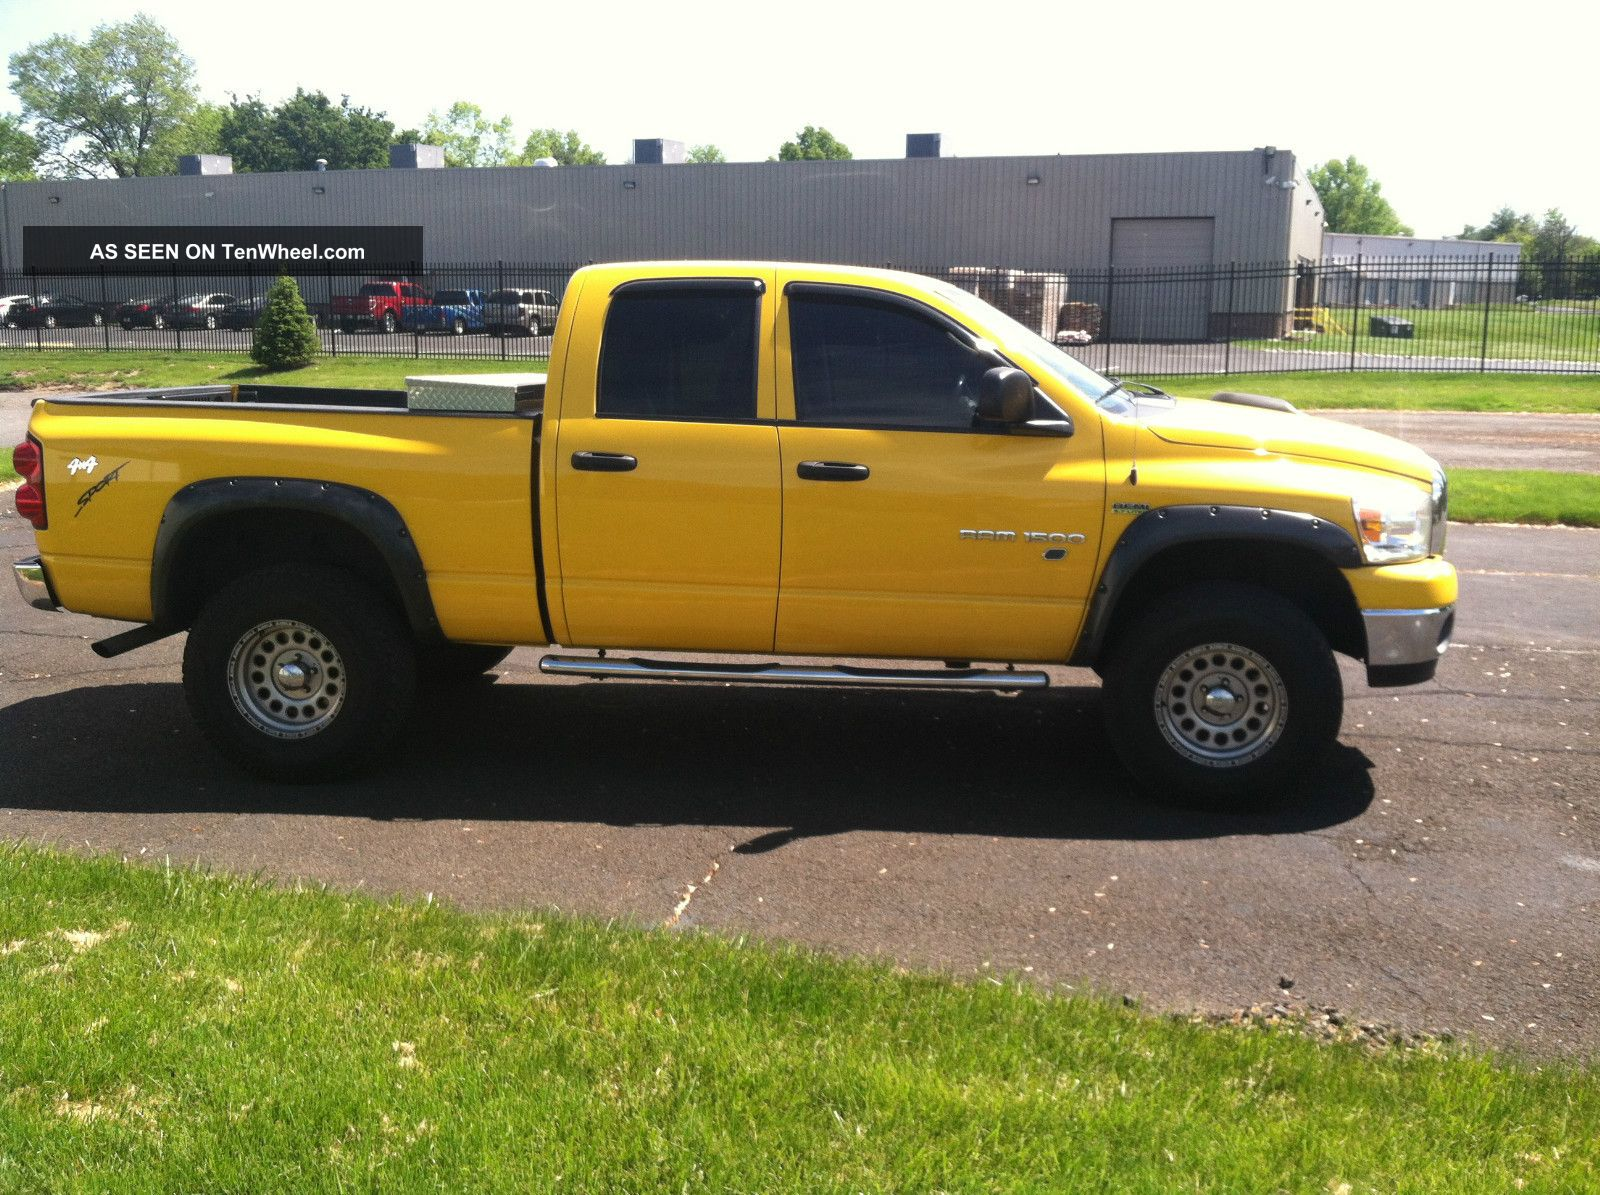 Lifted 2007 Dodge Ram 1500 Slt 5.  7 Hemi Ram 1500 photo